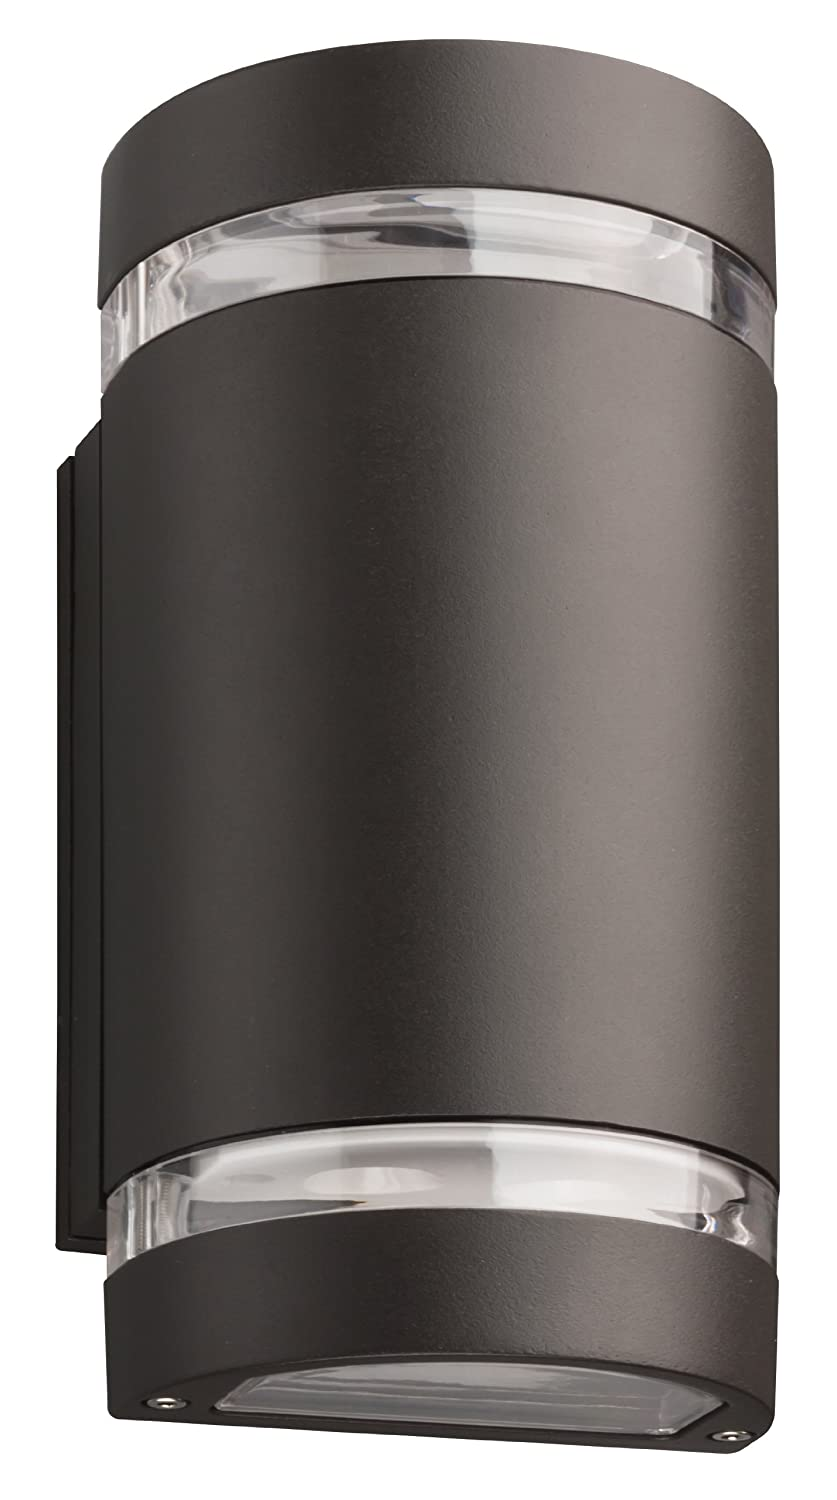 Lithonia ollwu ddb m6 outdoor led wall cylinder light amazon lithonia ollwu ddb m6 outdoor led wall cylinder light amazon tools home improvement aloadofball Choice Image